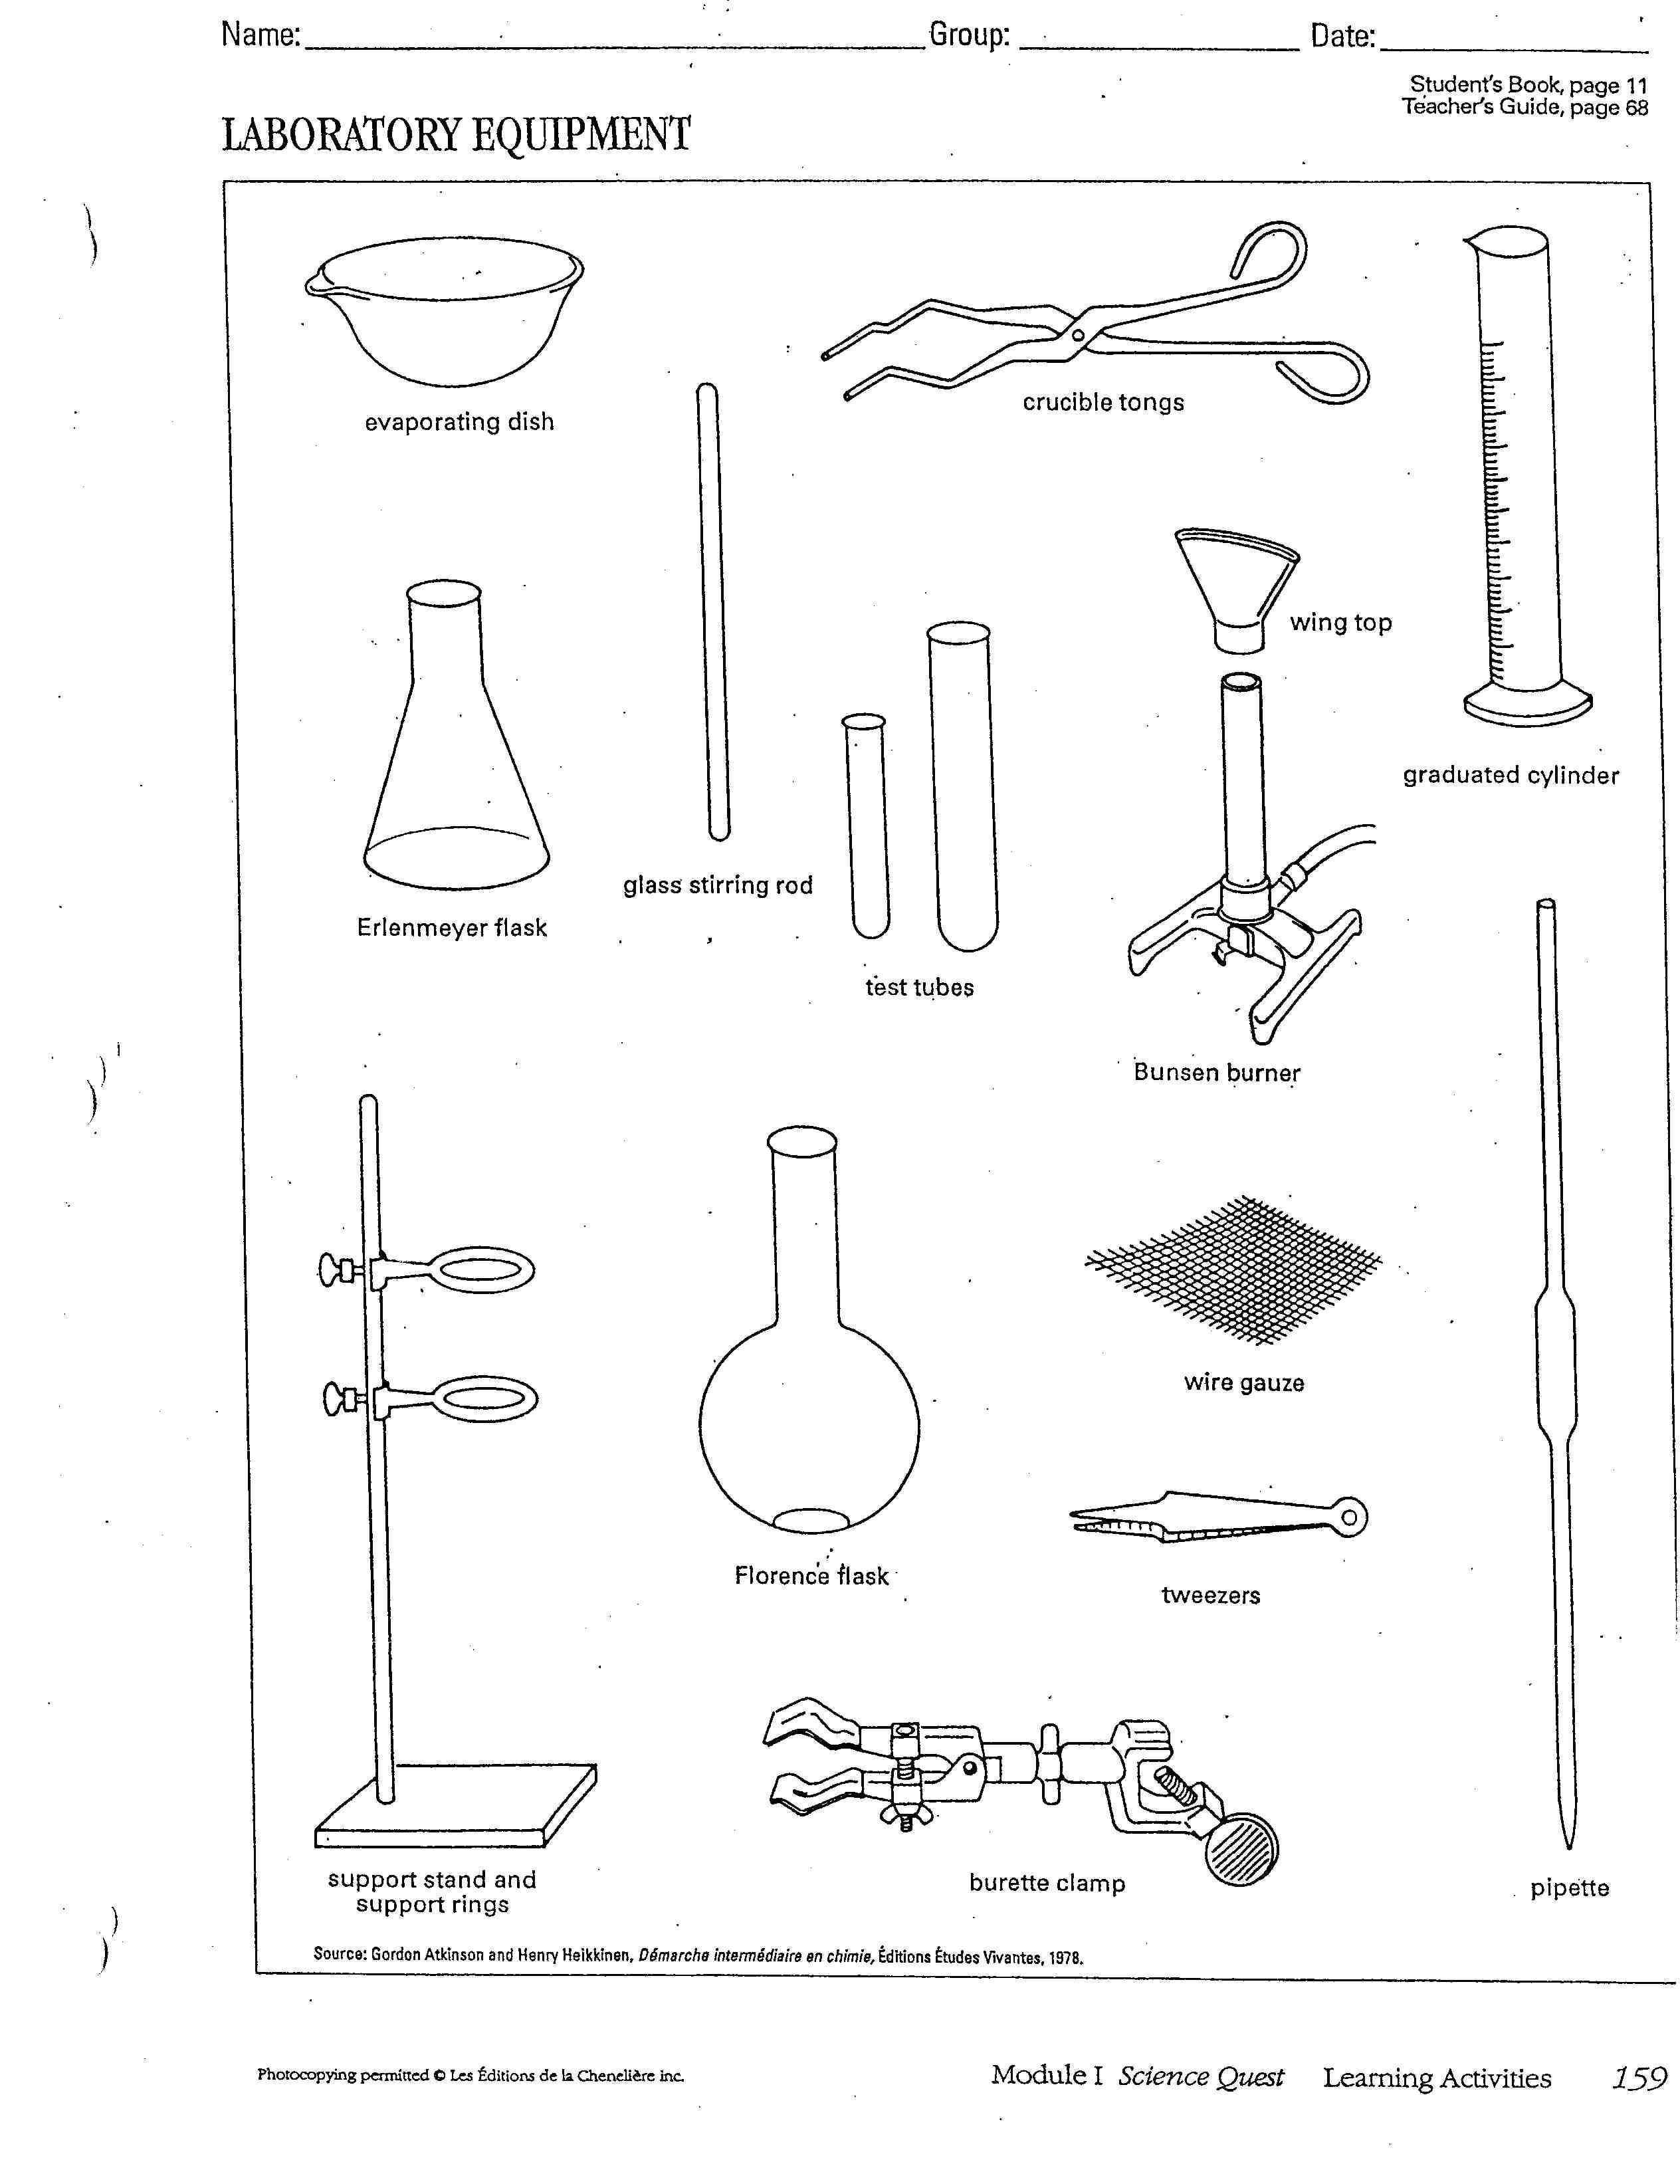 chemistry lab equipment bing images chemistry pinterest lab equipment and chemistry. Black Bedroom Furniture Sets. Home Design Ideas